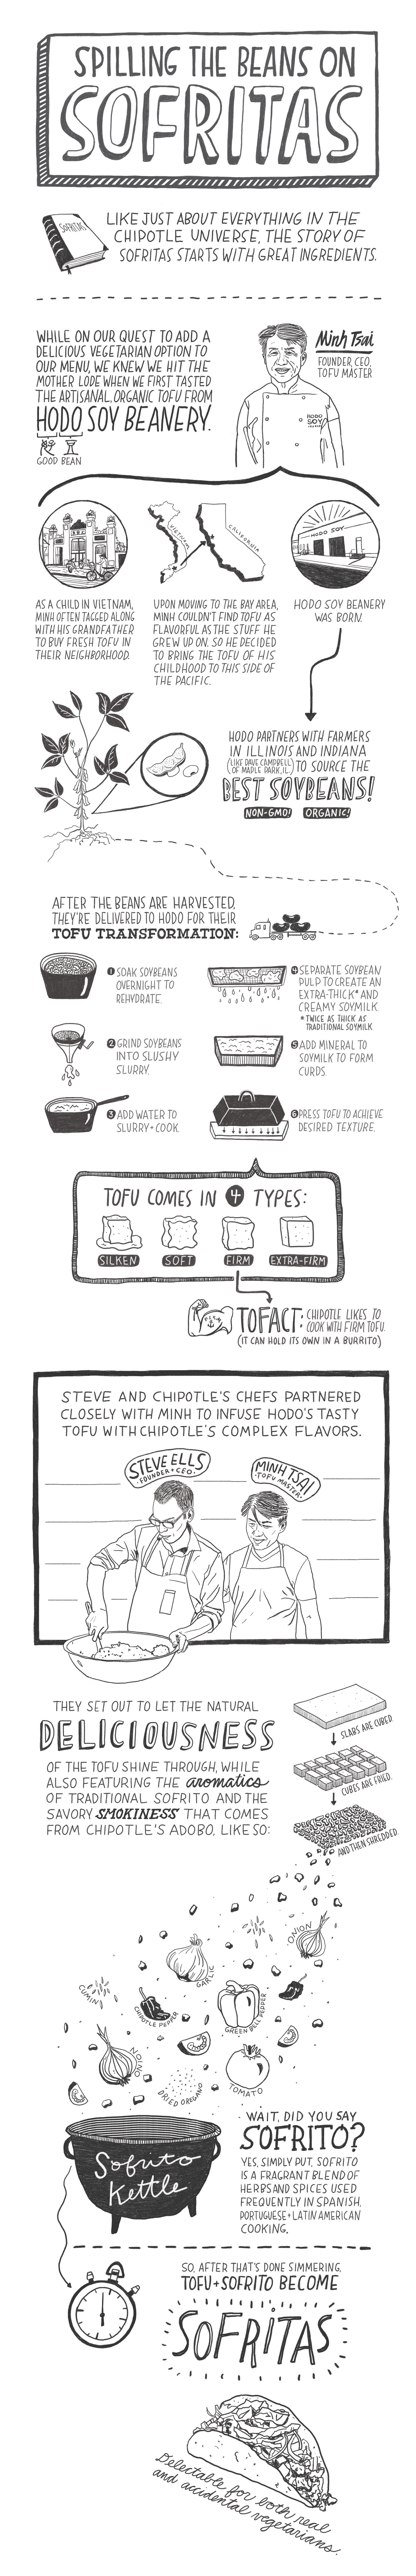 Chipotle — Spilling the Beans on Sofritas